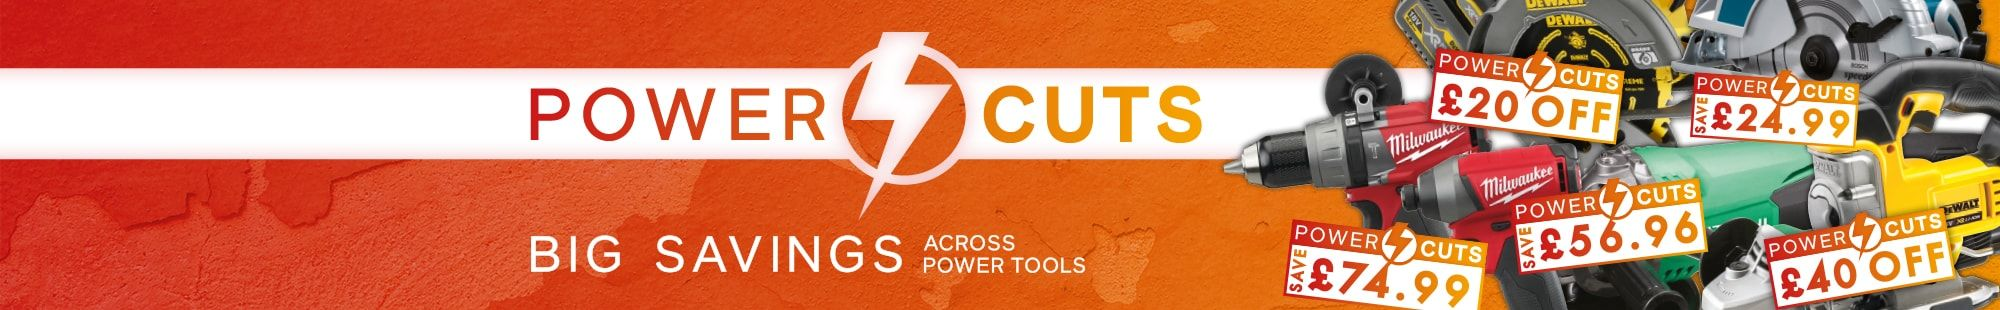 Power Tool Cuts